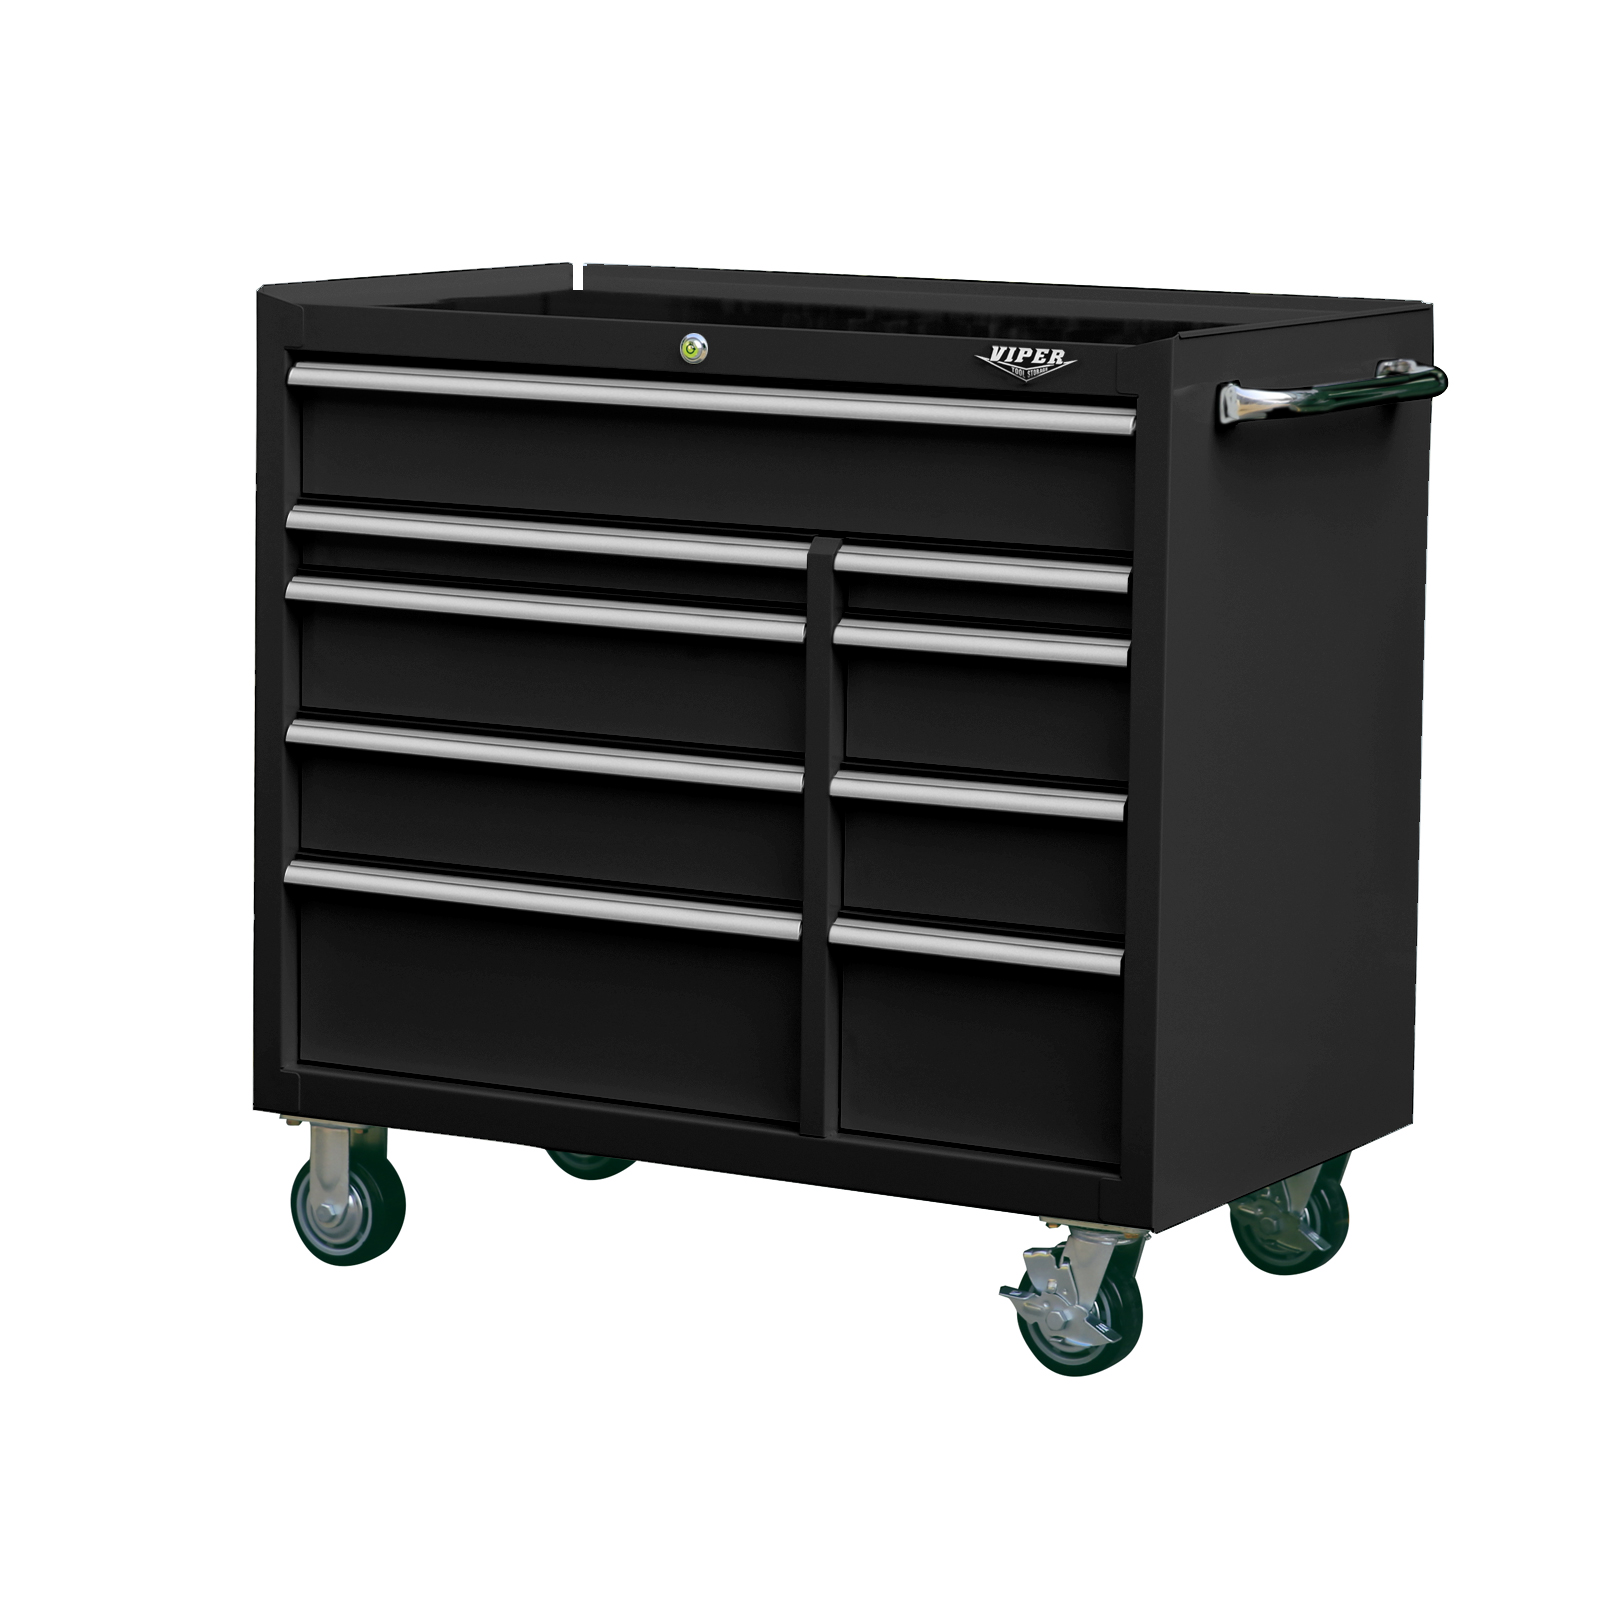 INTRODUCING 30 INCH 5 DRAWER U0026 41 INCH 9 DRAWER PREMIUM SERIES